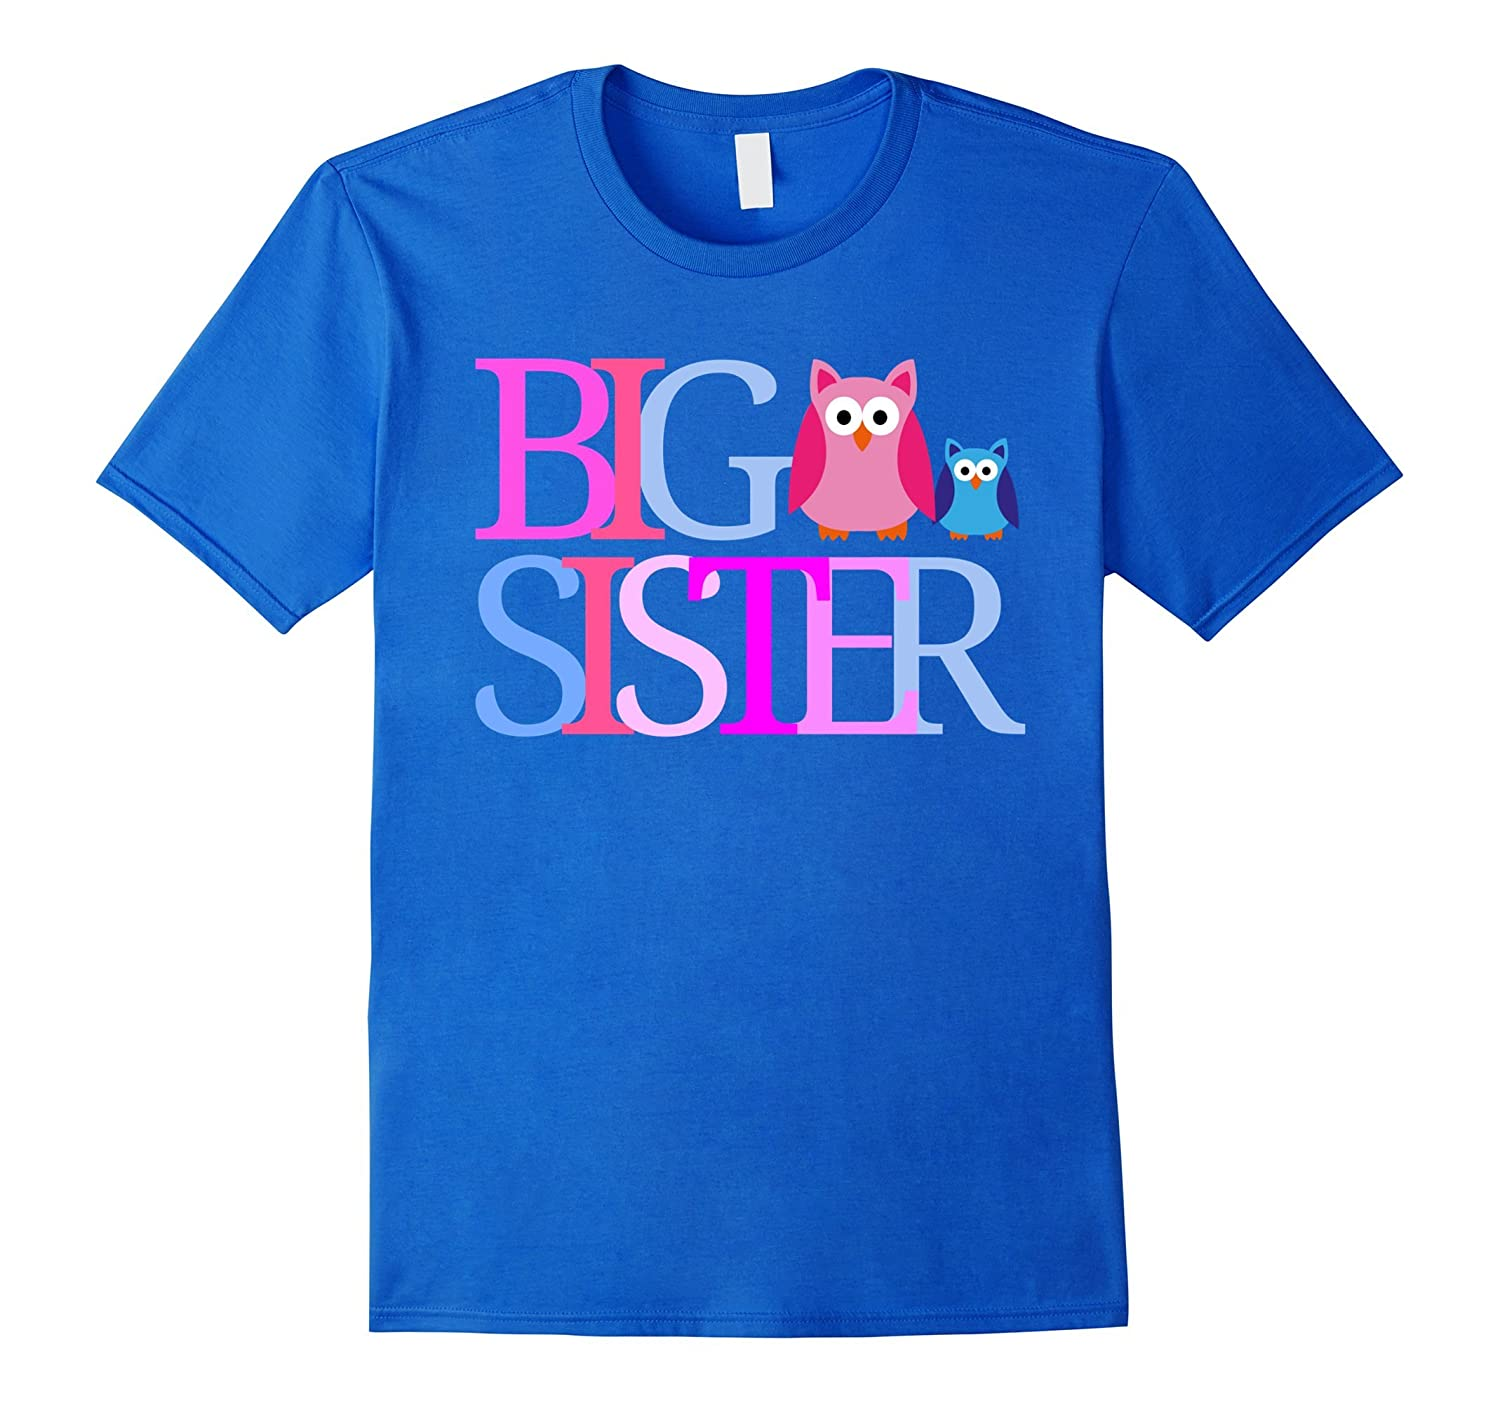 BIG SISTER T Shirt Cute Owls Tee Going To Be A Big Sister-mt